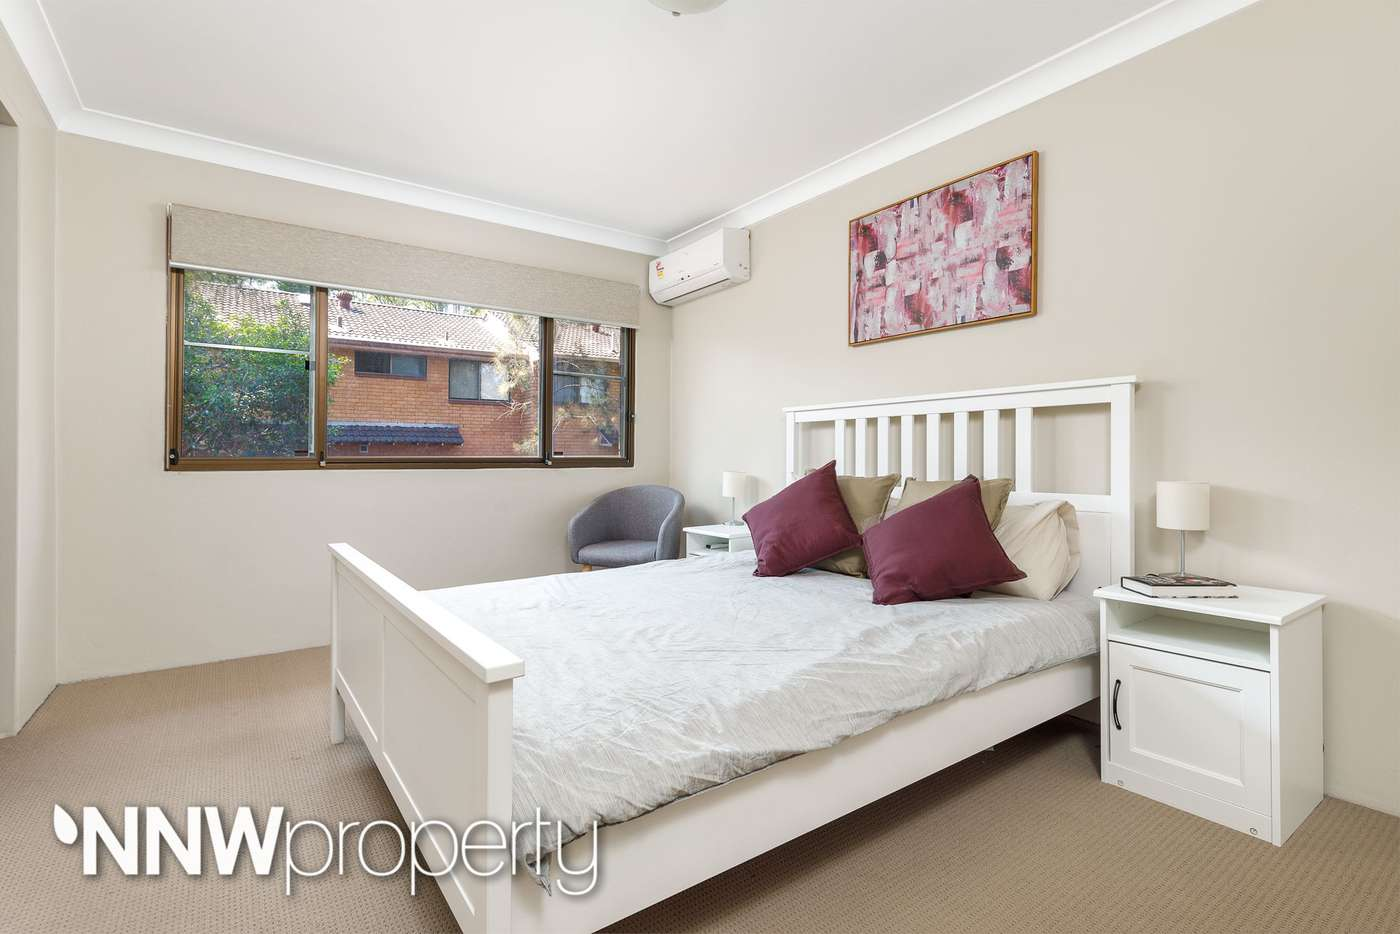 Fifth view of Homely townhouse listing, 7/140 Crimea Road, Marsfield NSW 2122